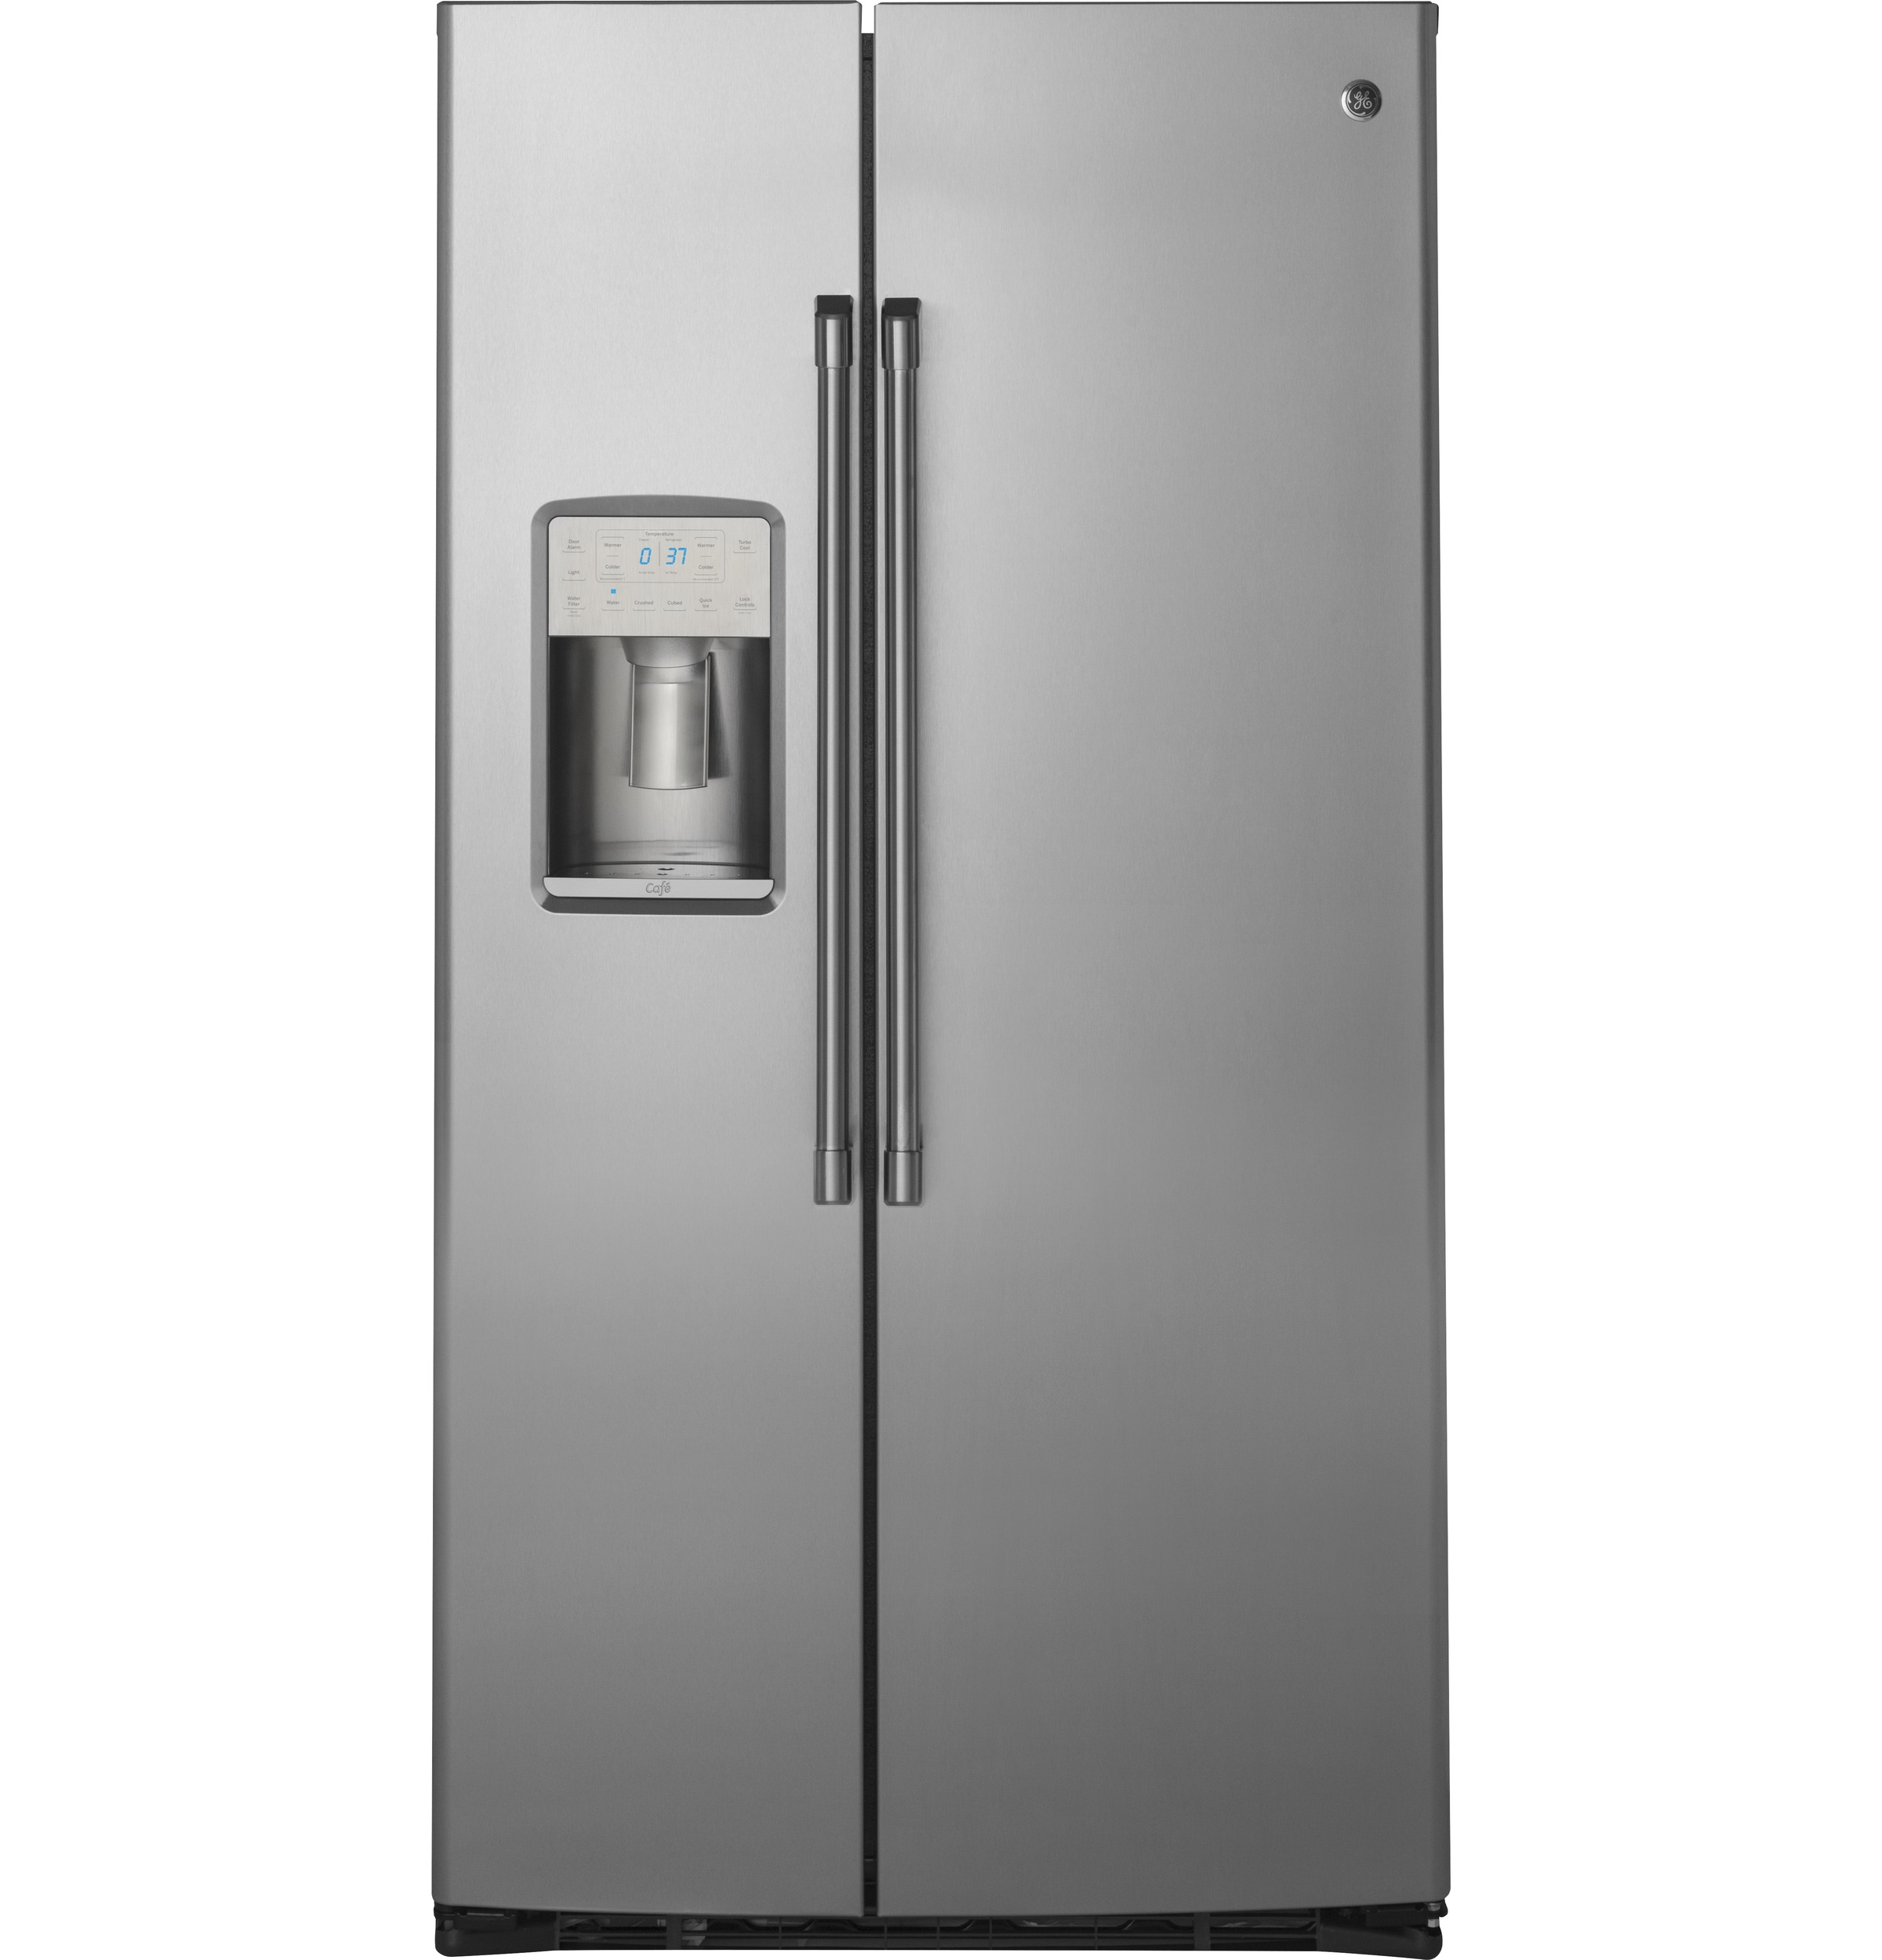 GE Cafe GE Café™ Series  21.9 Cu. Ft. Counter-Depth Side-By-Side Refrigerator